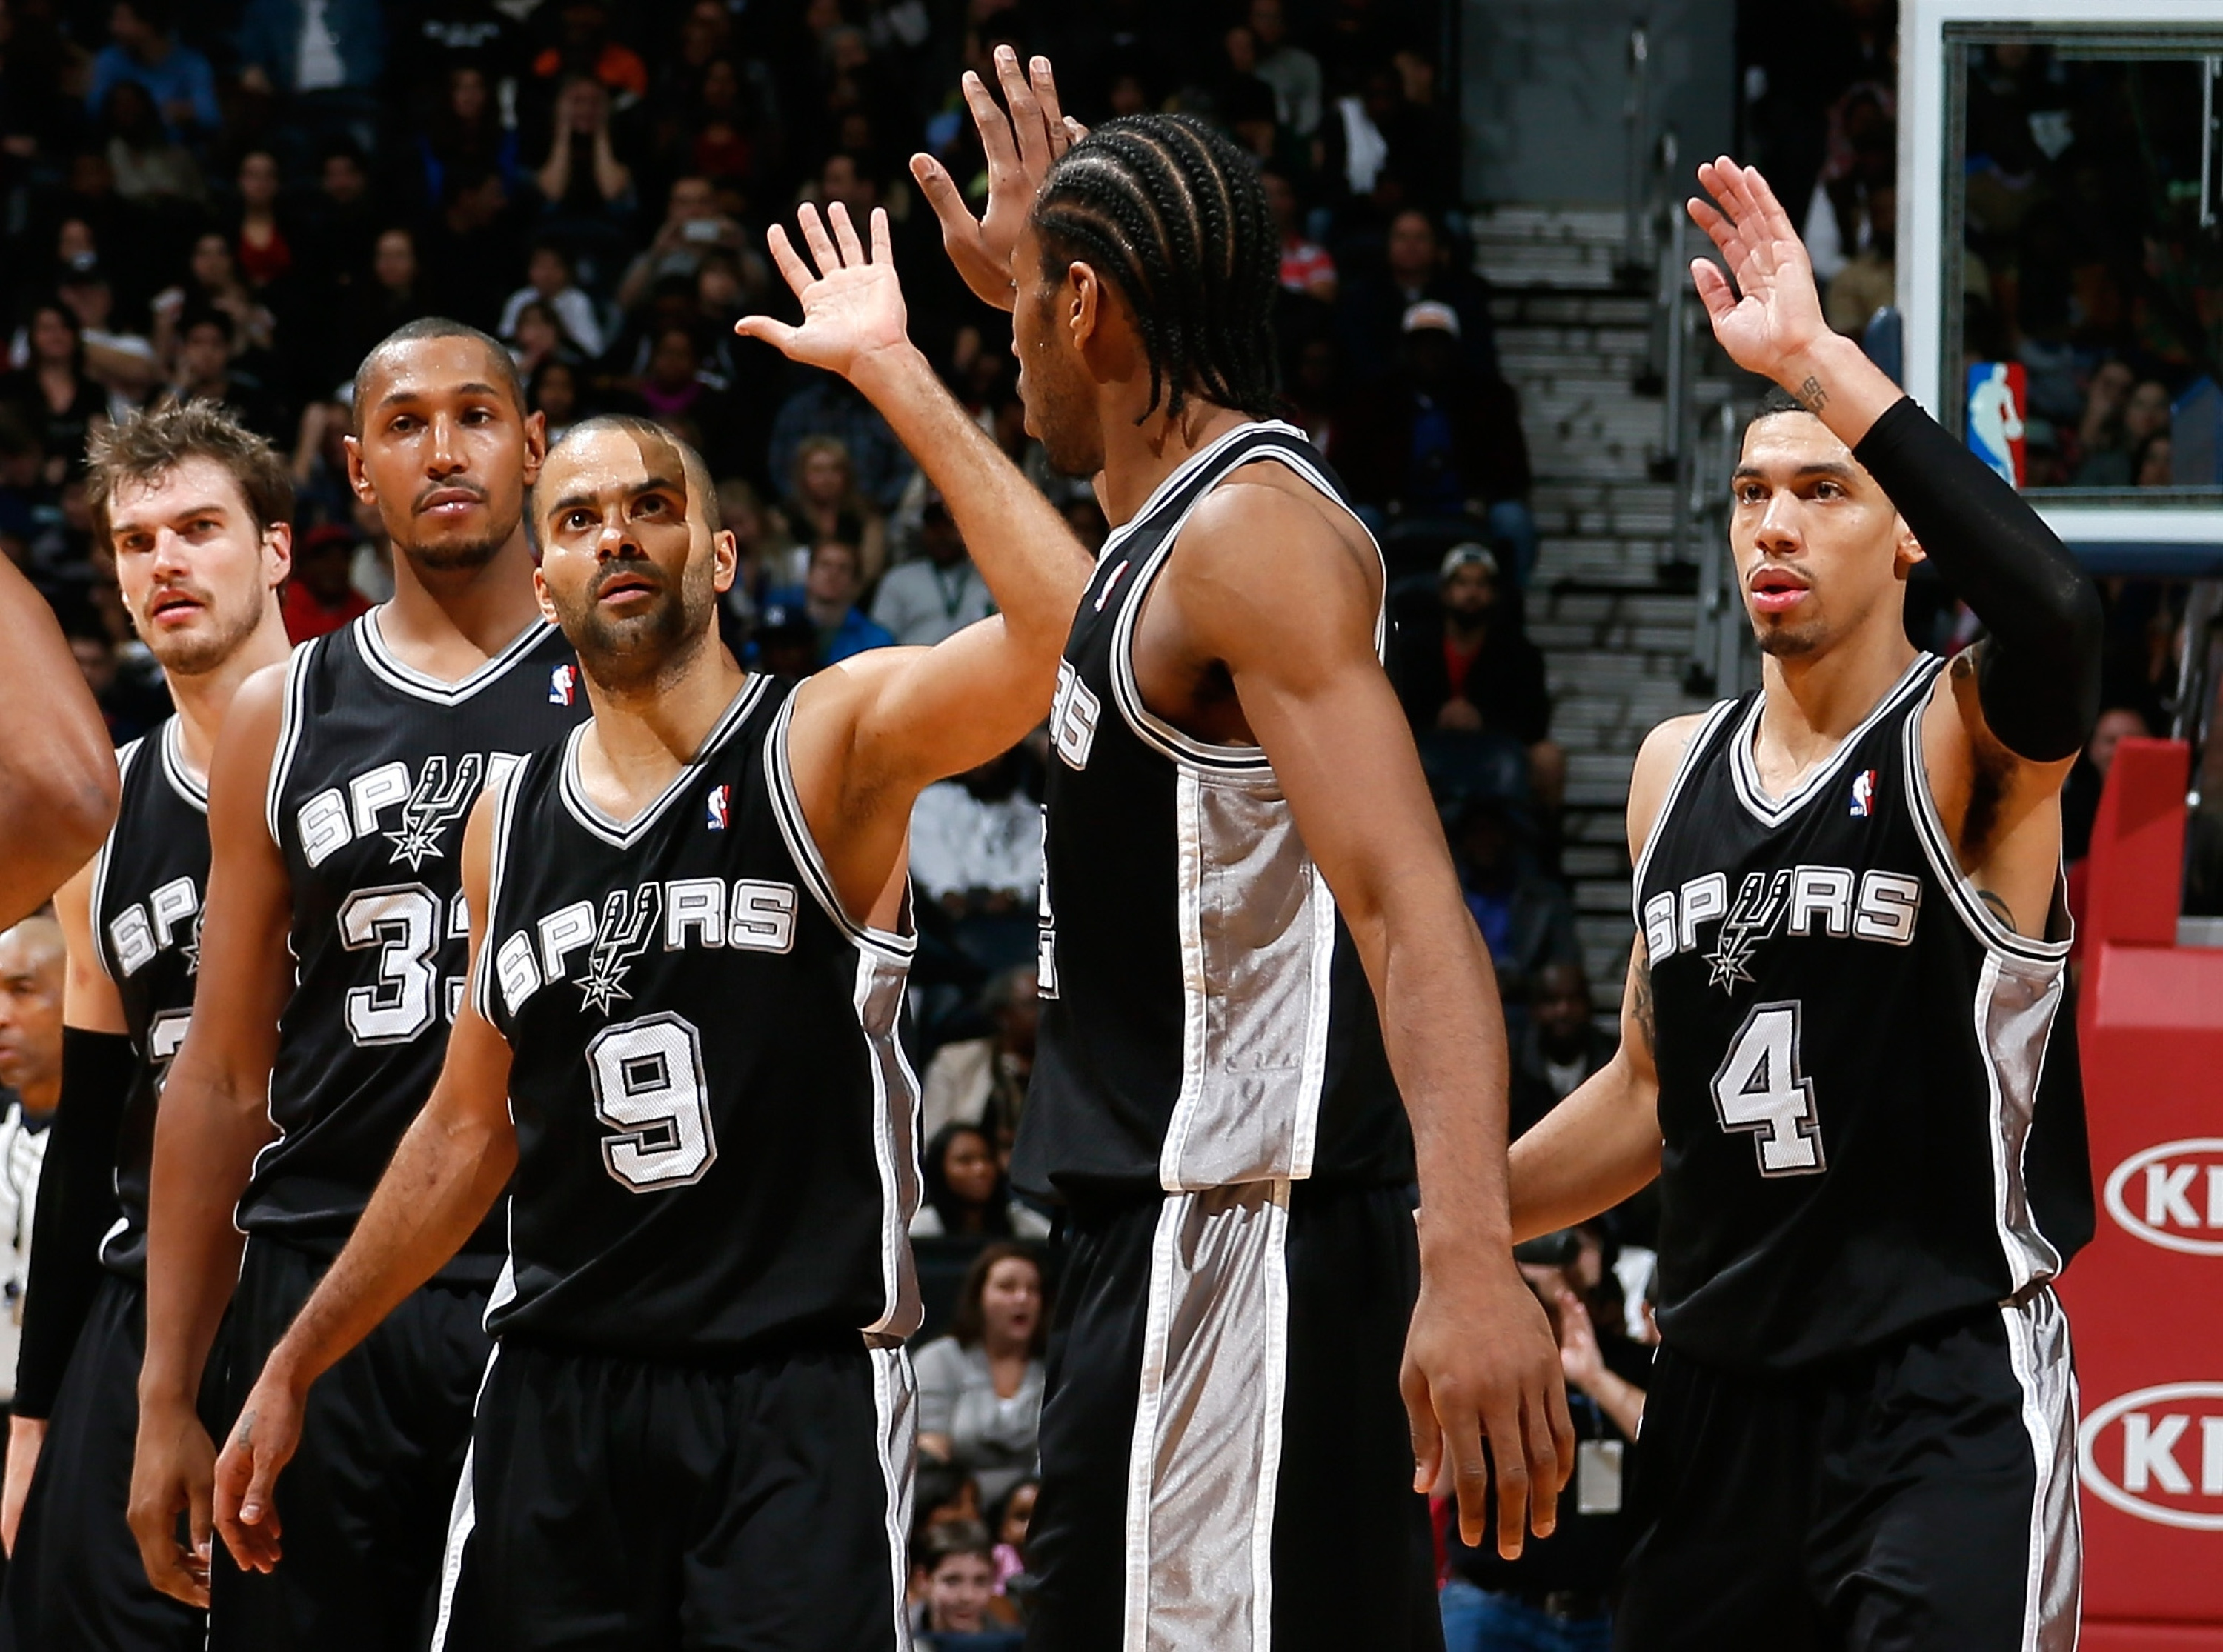 Point guard Tony Parker (9) and the Spurs are back on top. (Getty Images)